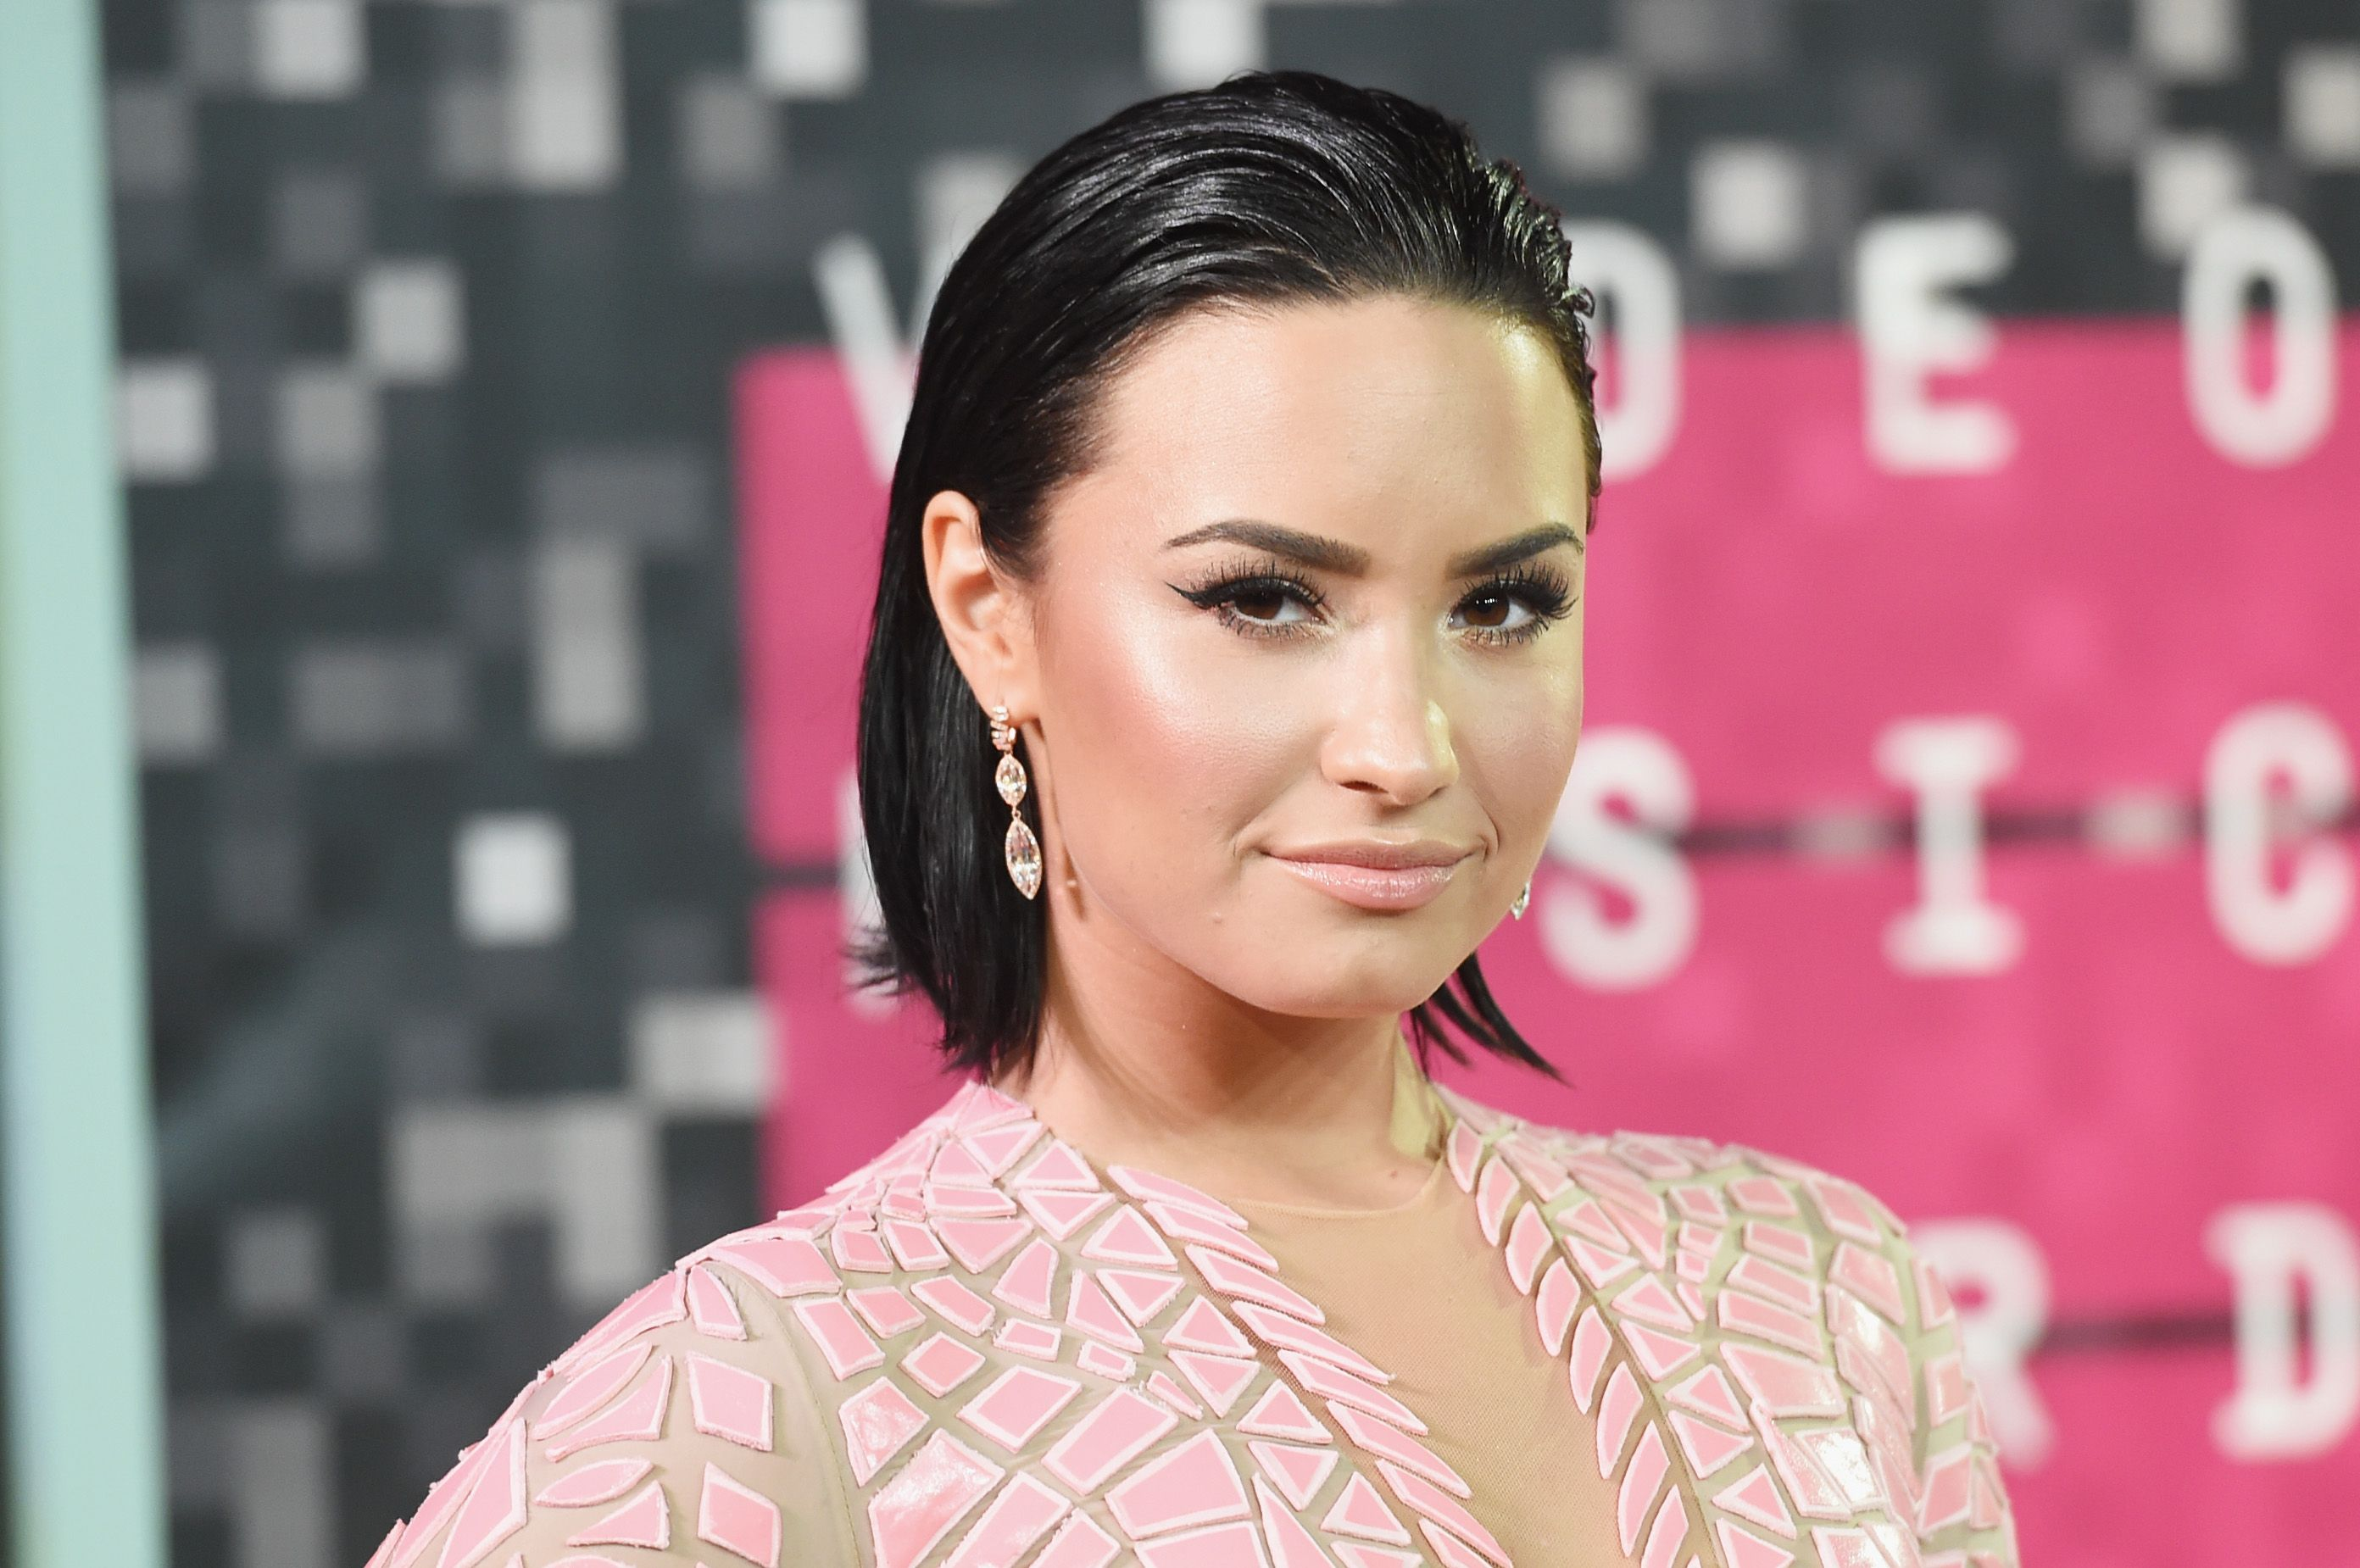 Demi Lovato Shares Her First Makeup-Free Selfie in Years